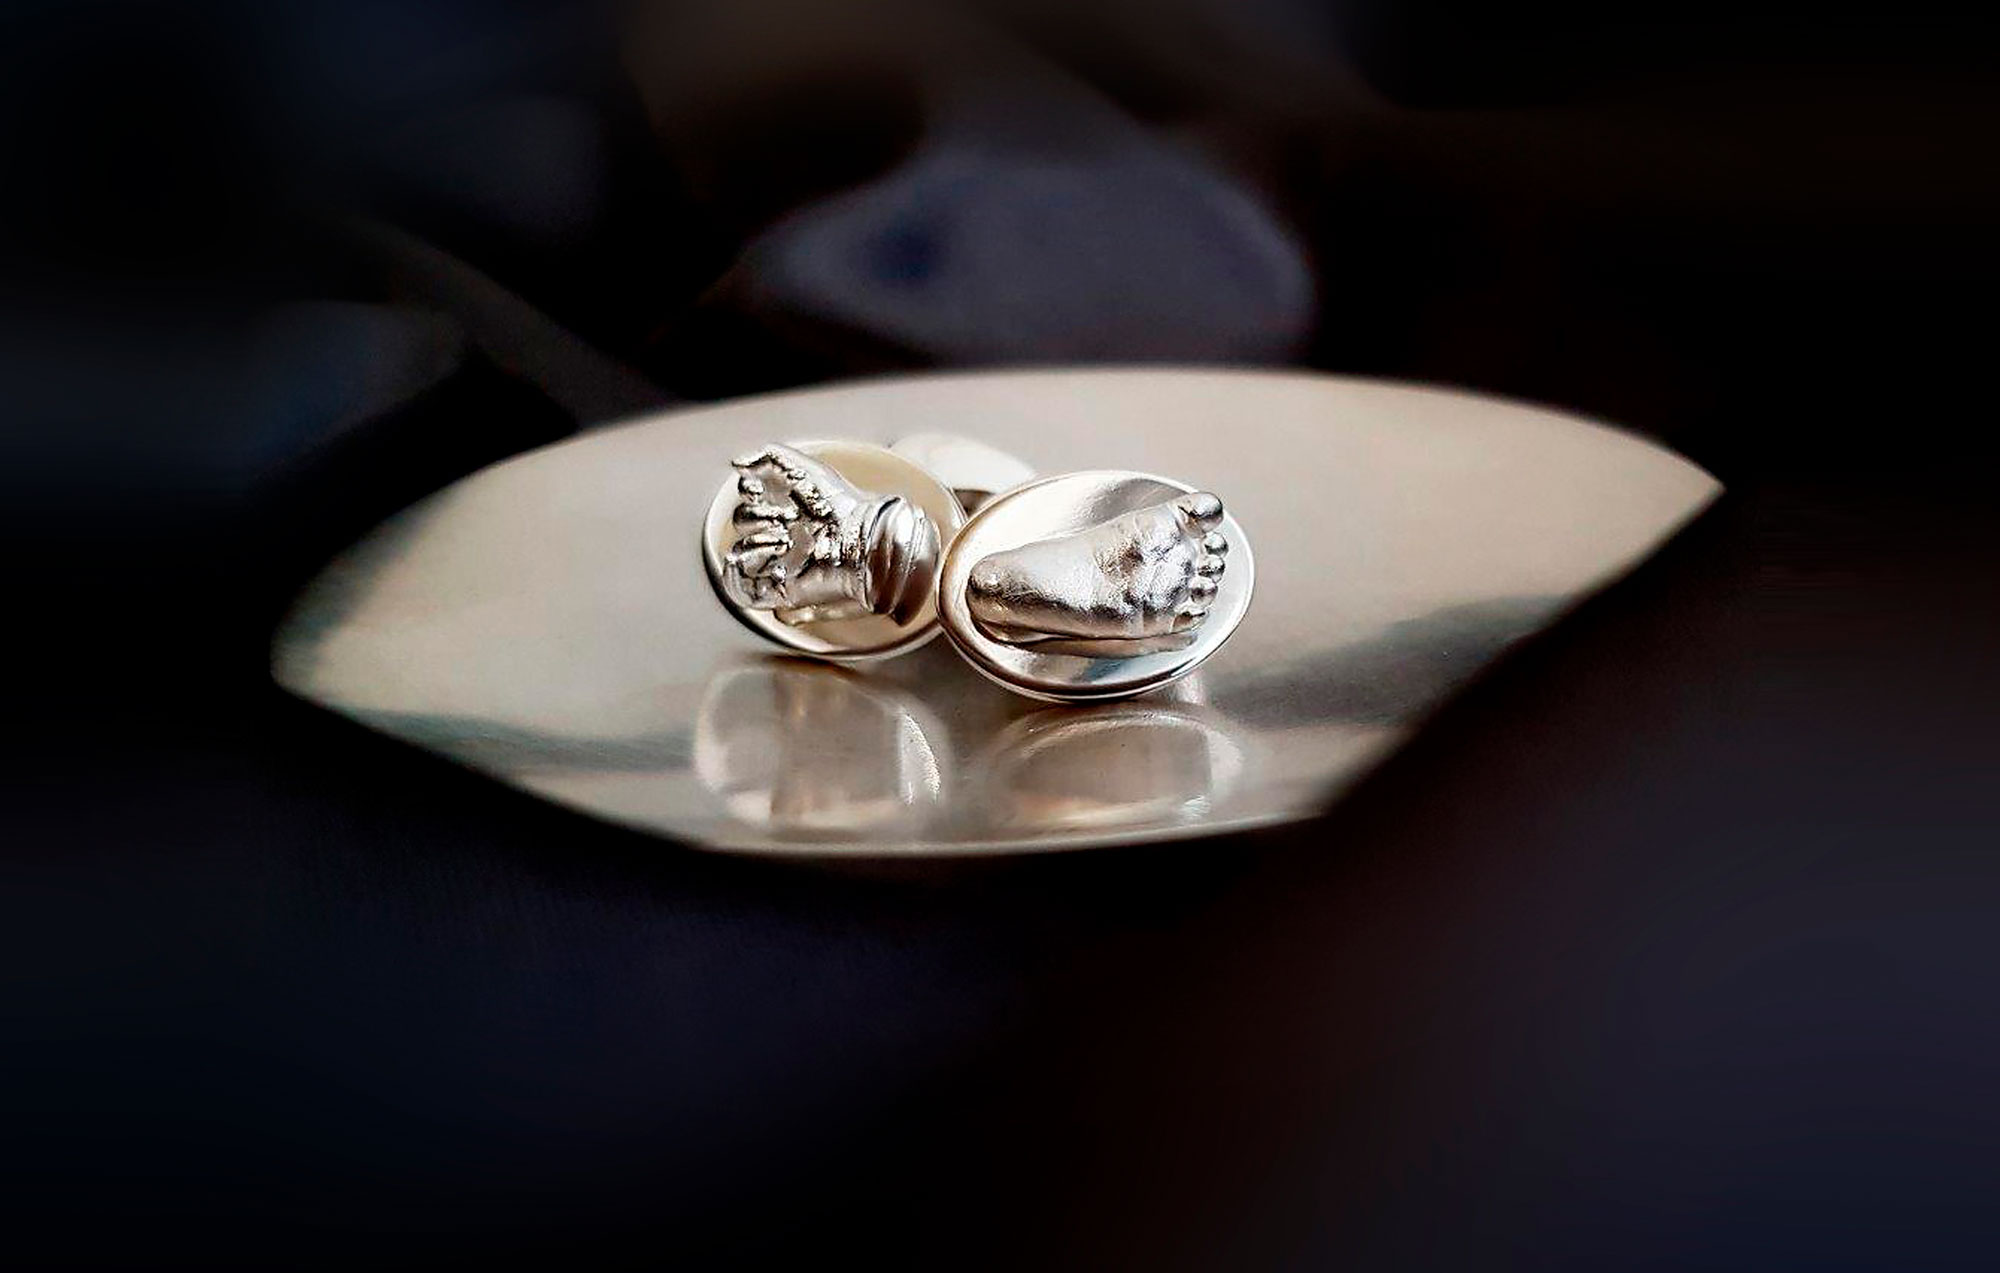 MINI HAND AND FOOT CUFFLINKS